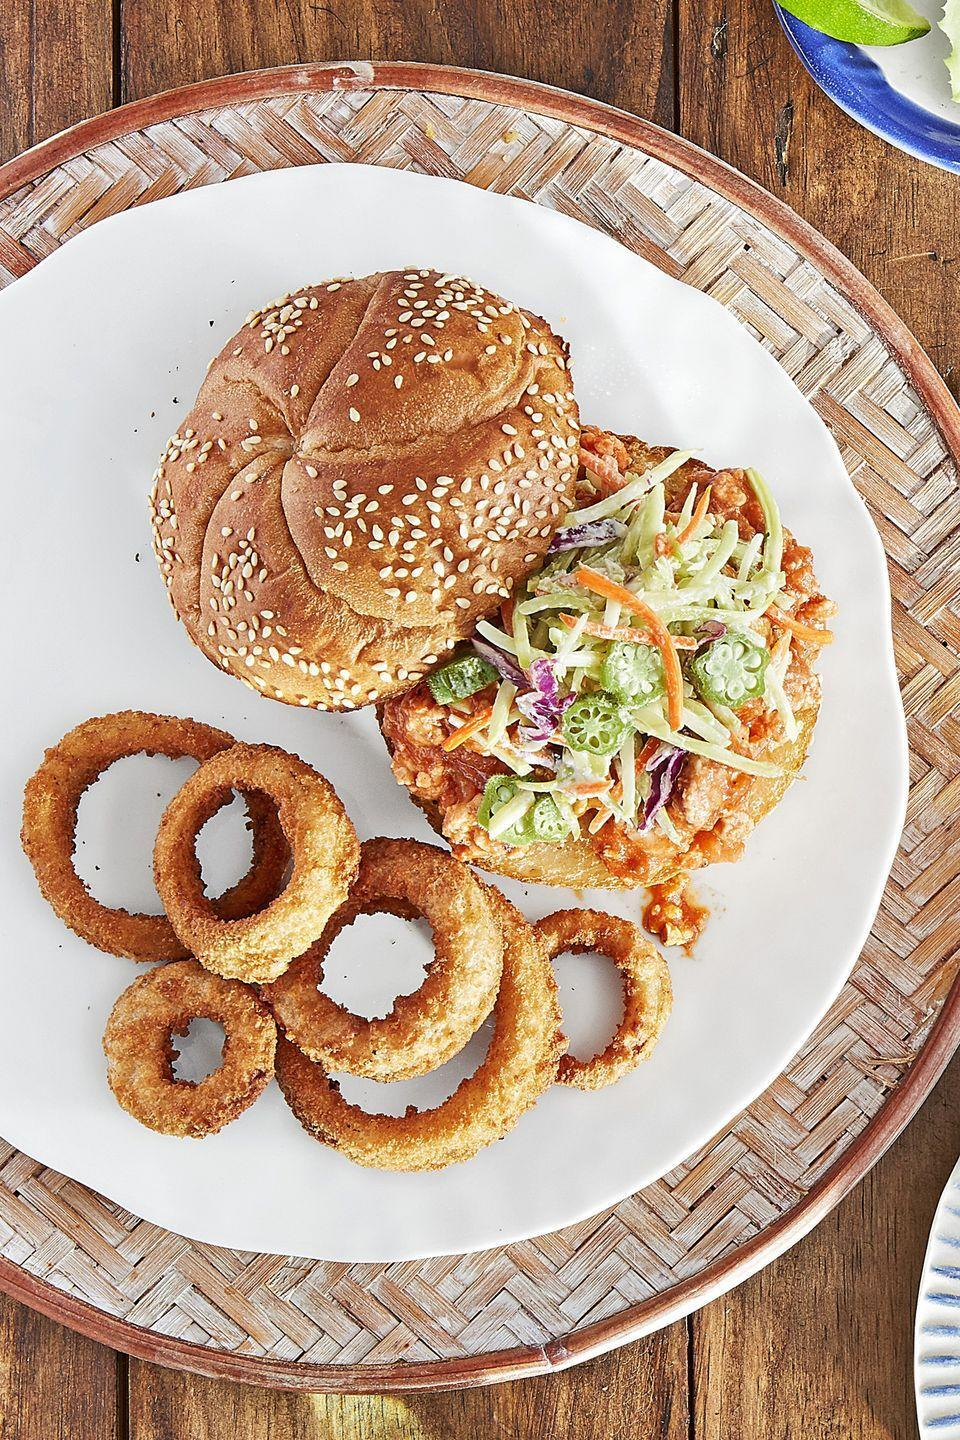 "<p>With onion rings and a homemade okra slaw, sloppy joes become a bit more refined.</p><p><a href=""https://www.countryliving.com/food-drinks/recipes/a44280/sloppy-joes-pickled-okra-slaw-recipe/"" rel=""nofollow noopener"" target=""_blank"" data-ylk=""slk:Get the recipe."" class=""link rapid-noclick-resp""><strong>Get the recipe.</strong></a></p>"